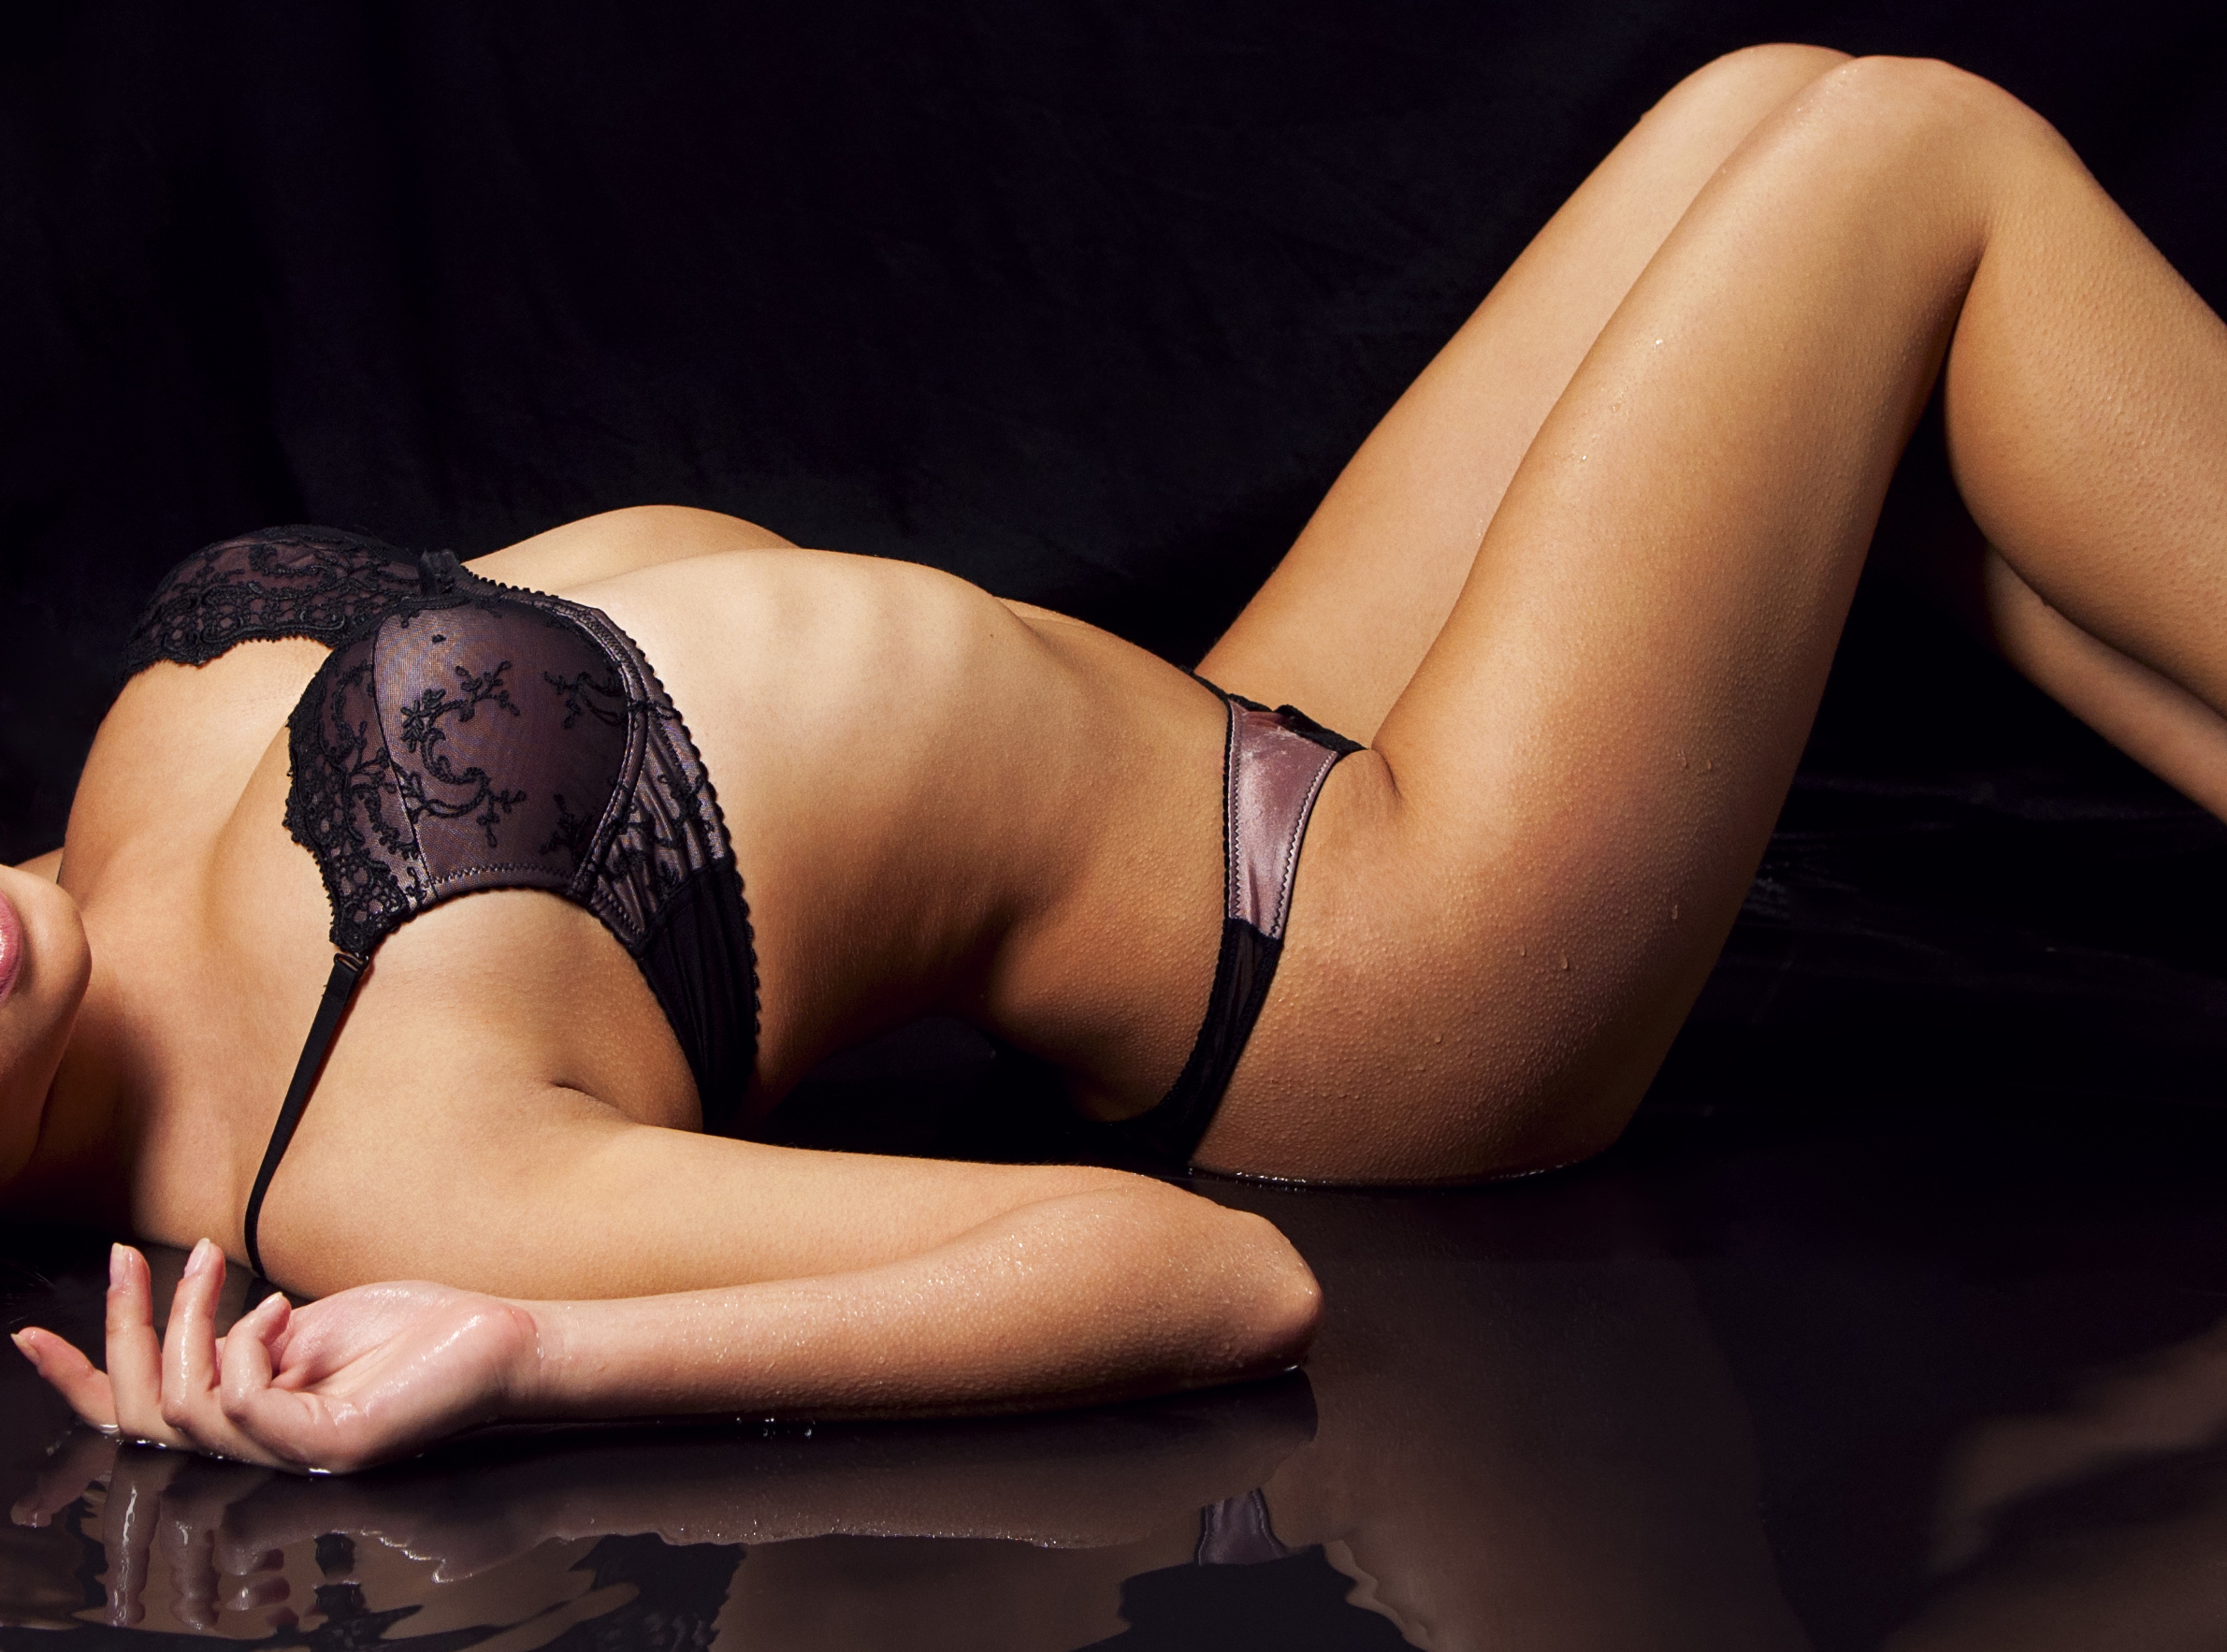 erotic massage sunshine coast ballarat brothels